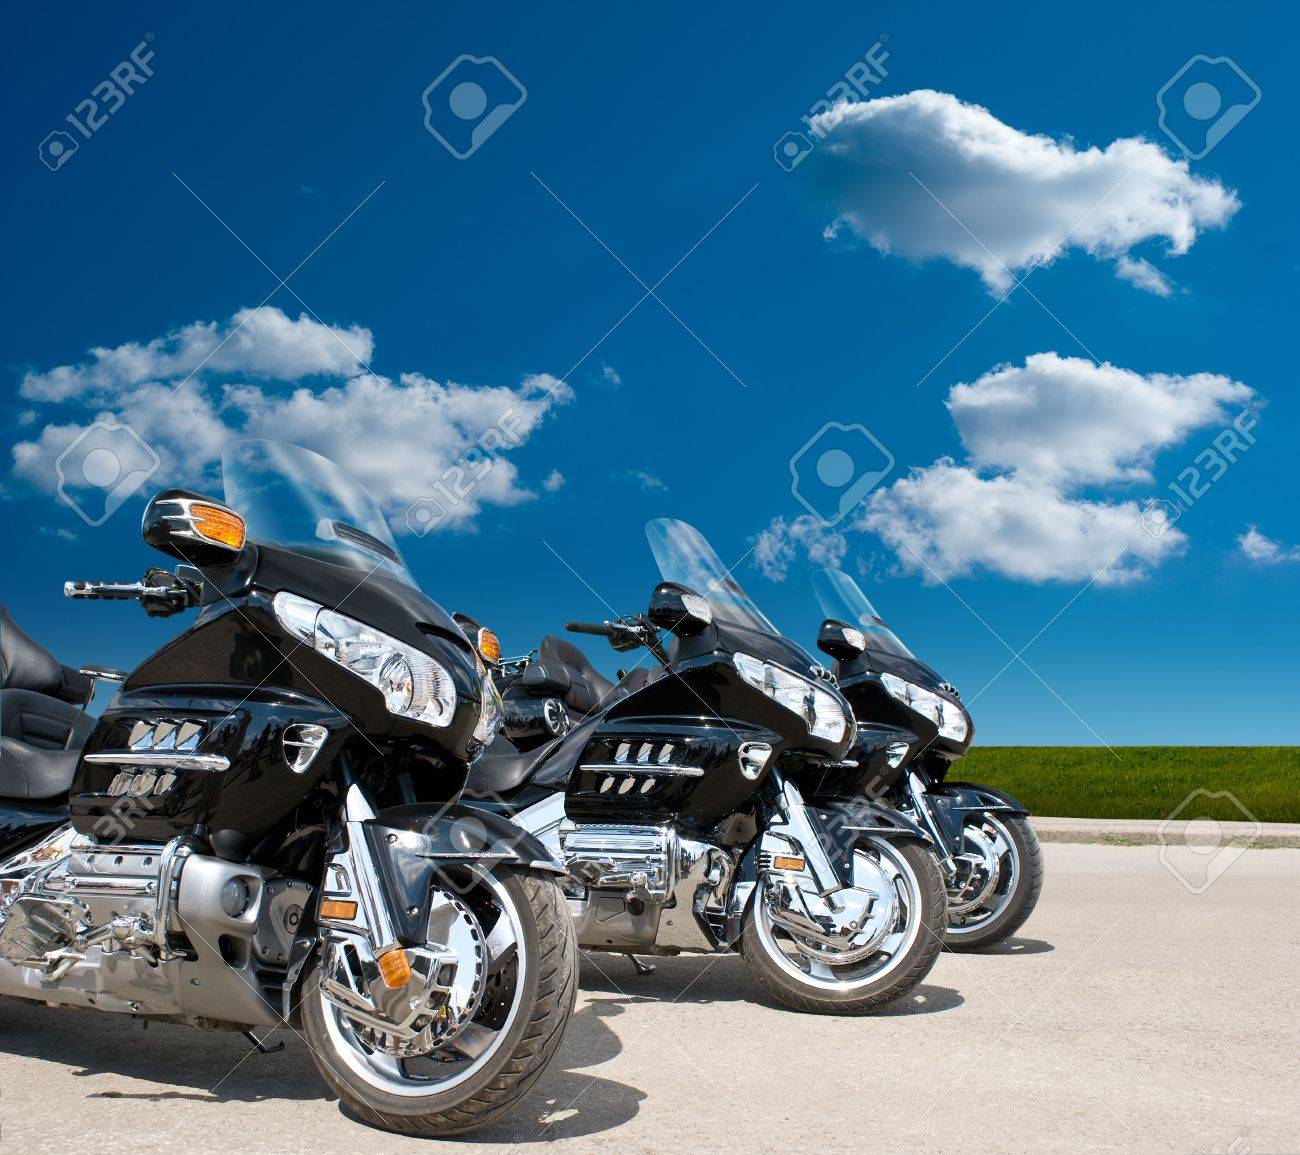 front view of Three Motorcycles on a road - 5603450